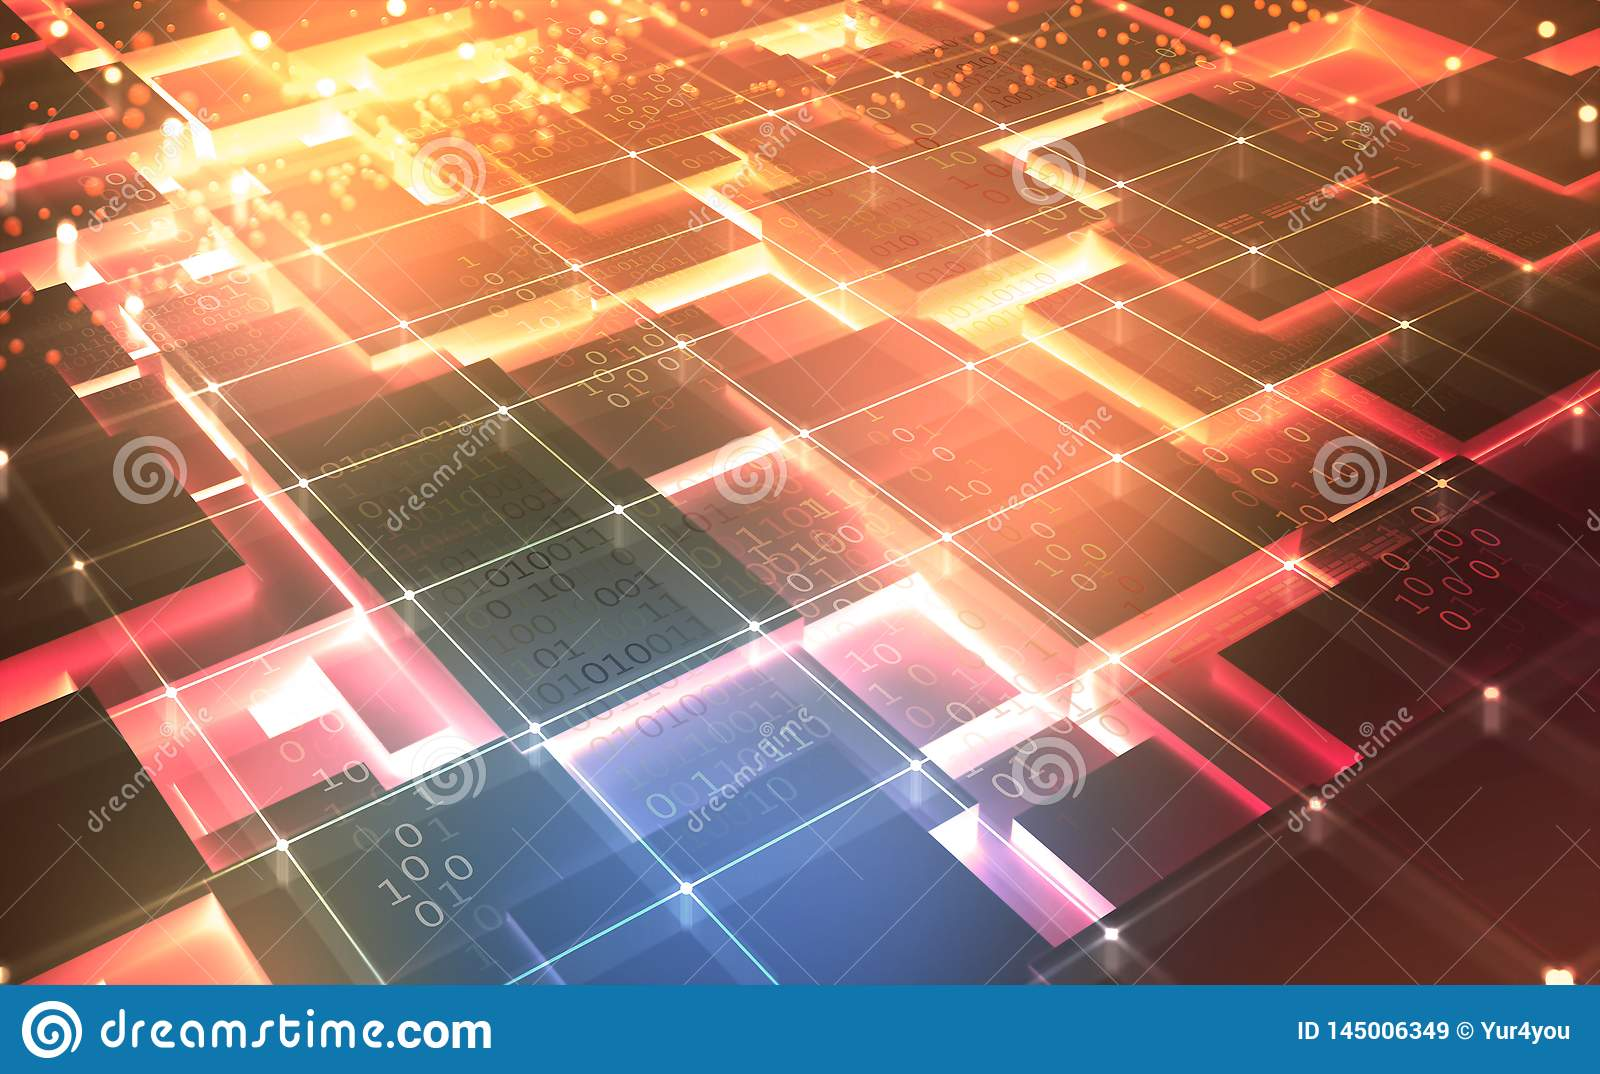 https://thumbs.dreamstime.com/z/quantum-computer-architecture-cyberspace-abstract-concept-blockchain-network-quantum-computer-architecture-cyberspace-abstract-145006349.jpg